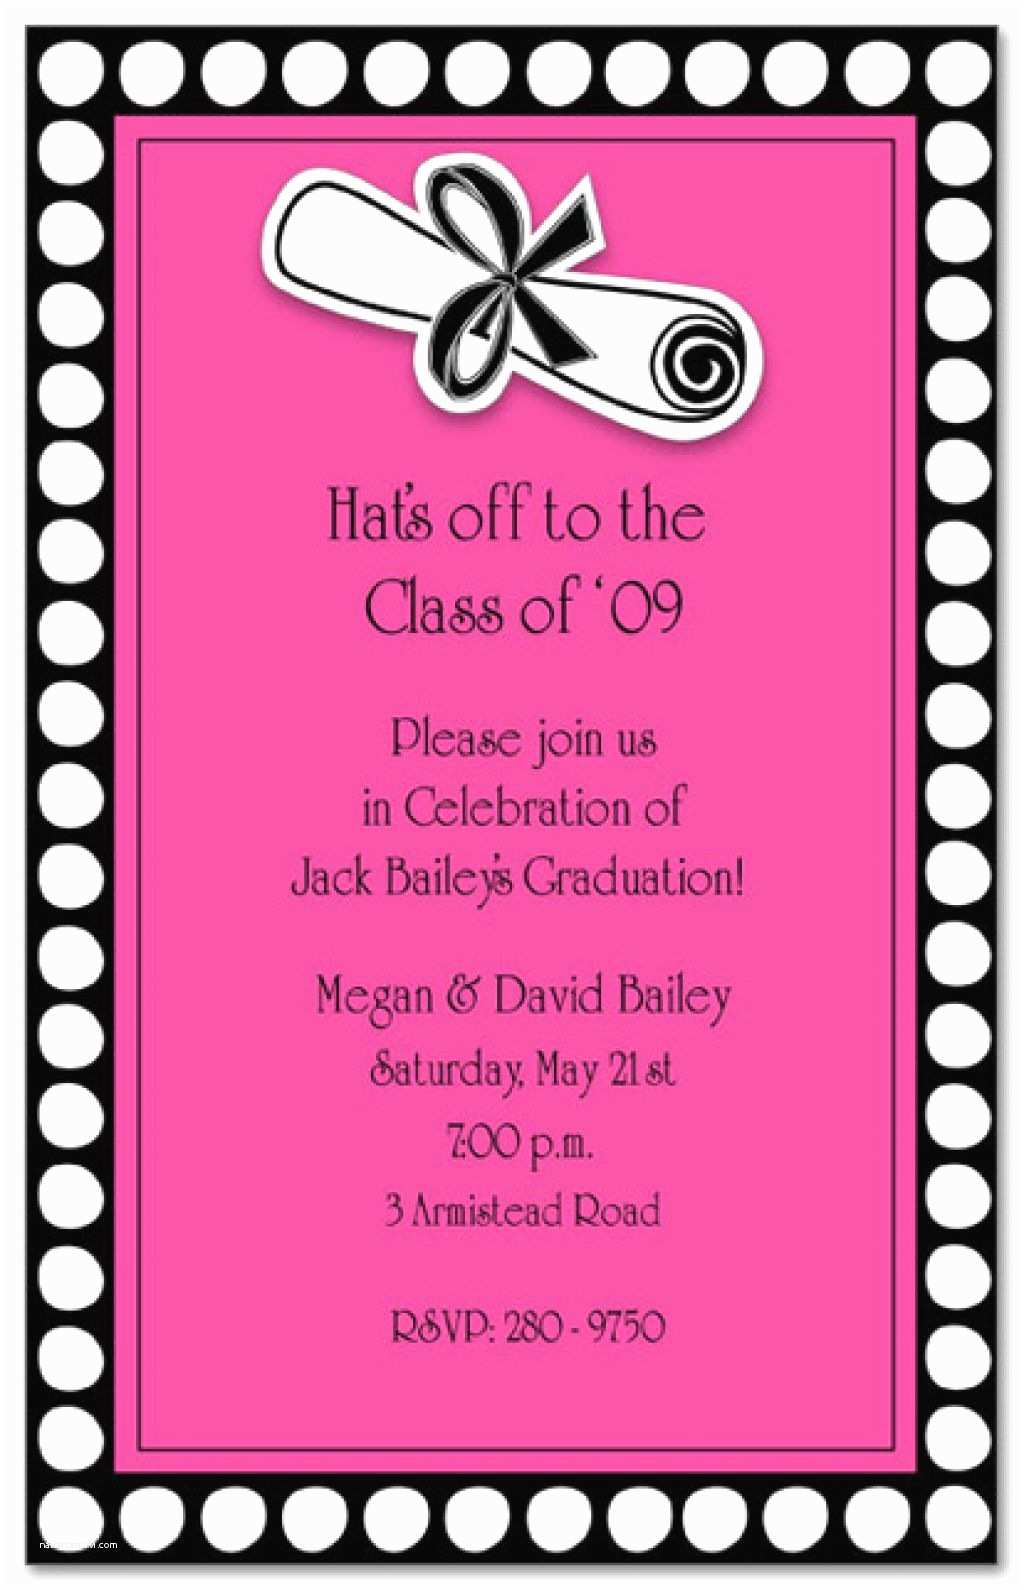 Sample Graduation Party Invitation Sample Wording for Graduation Party Invitations Abou and